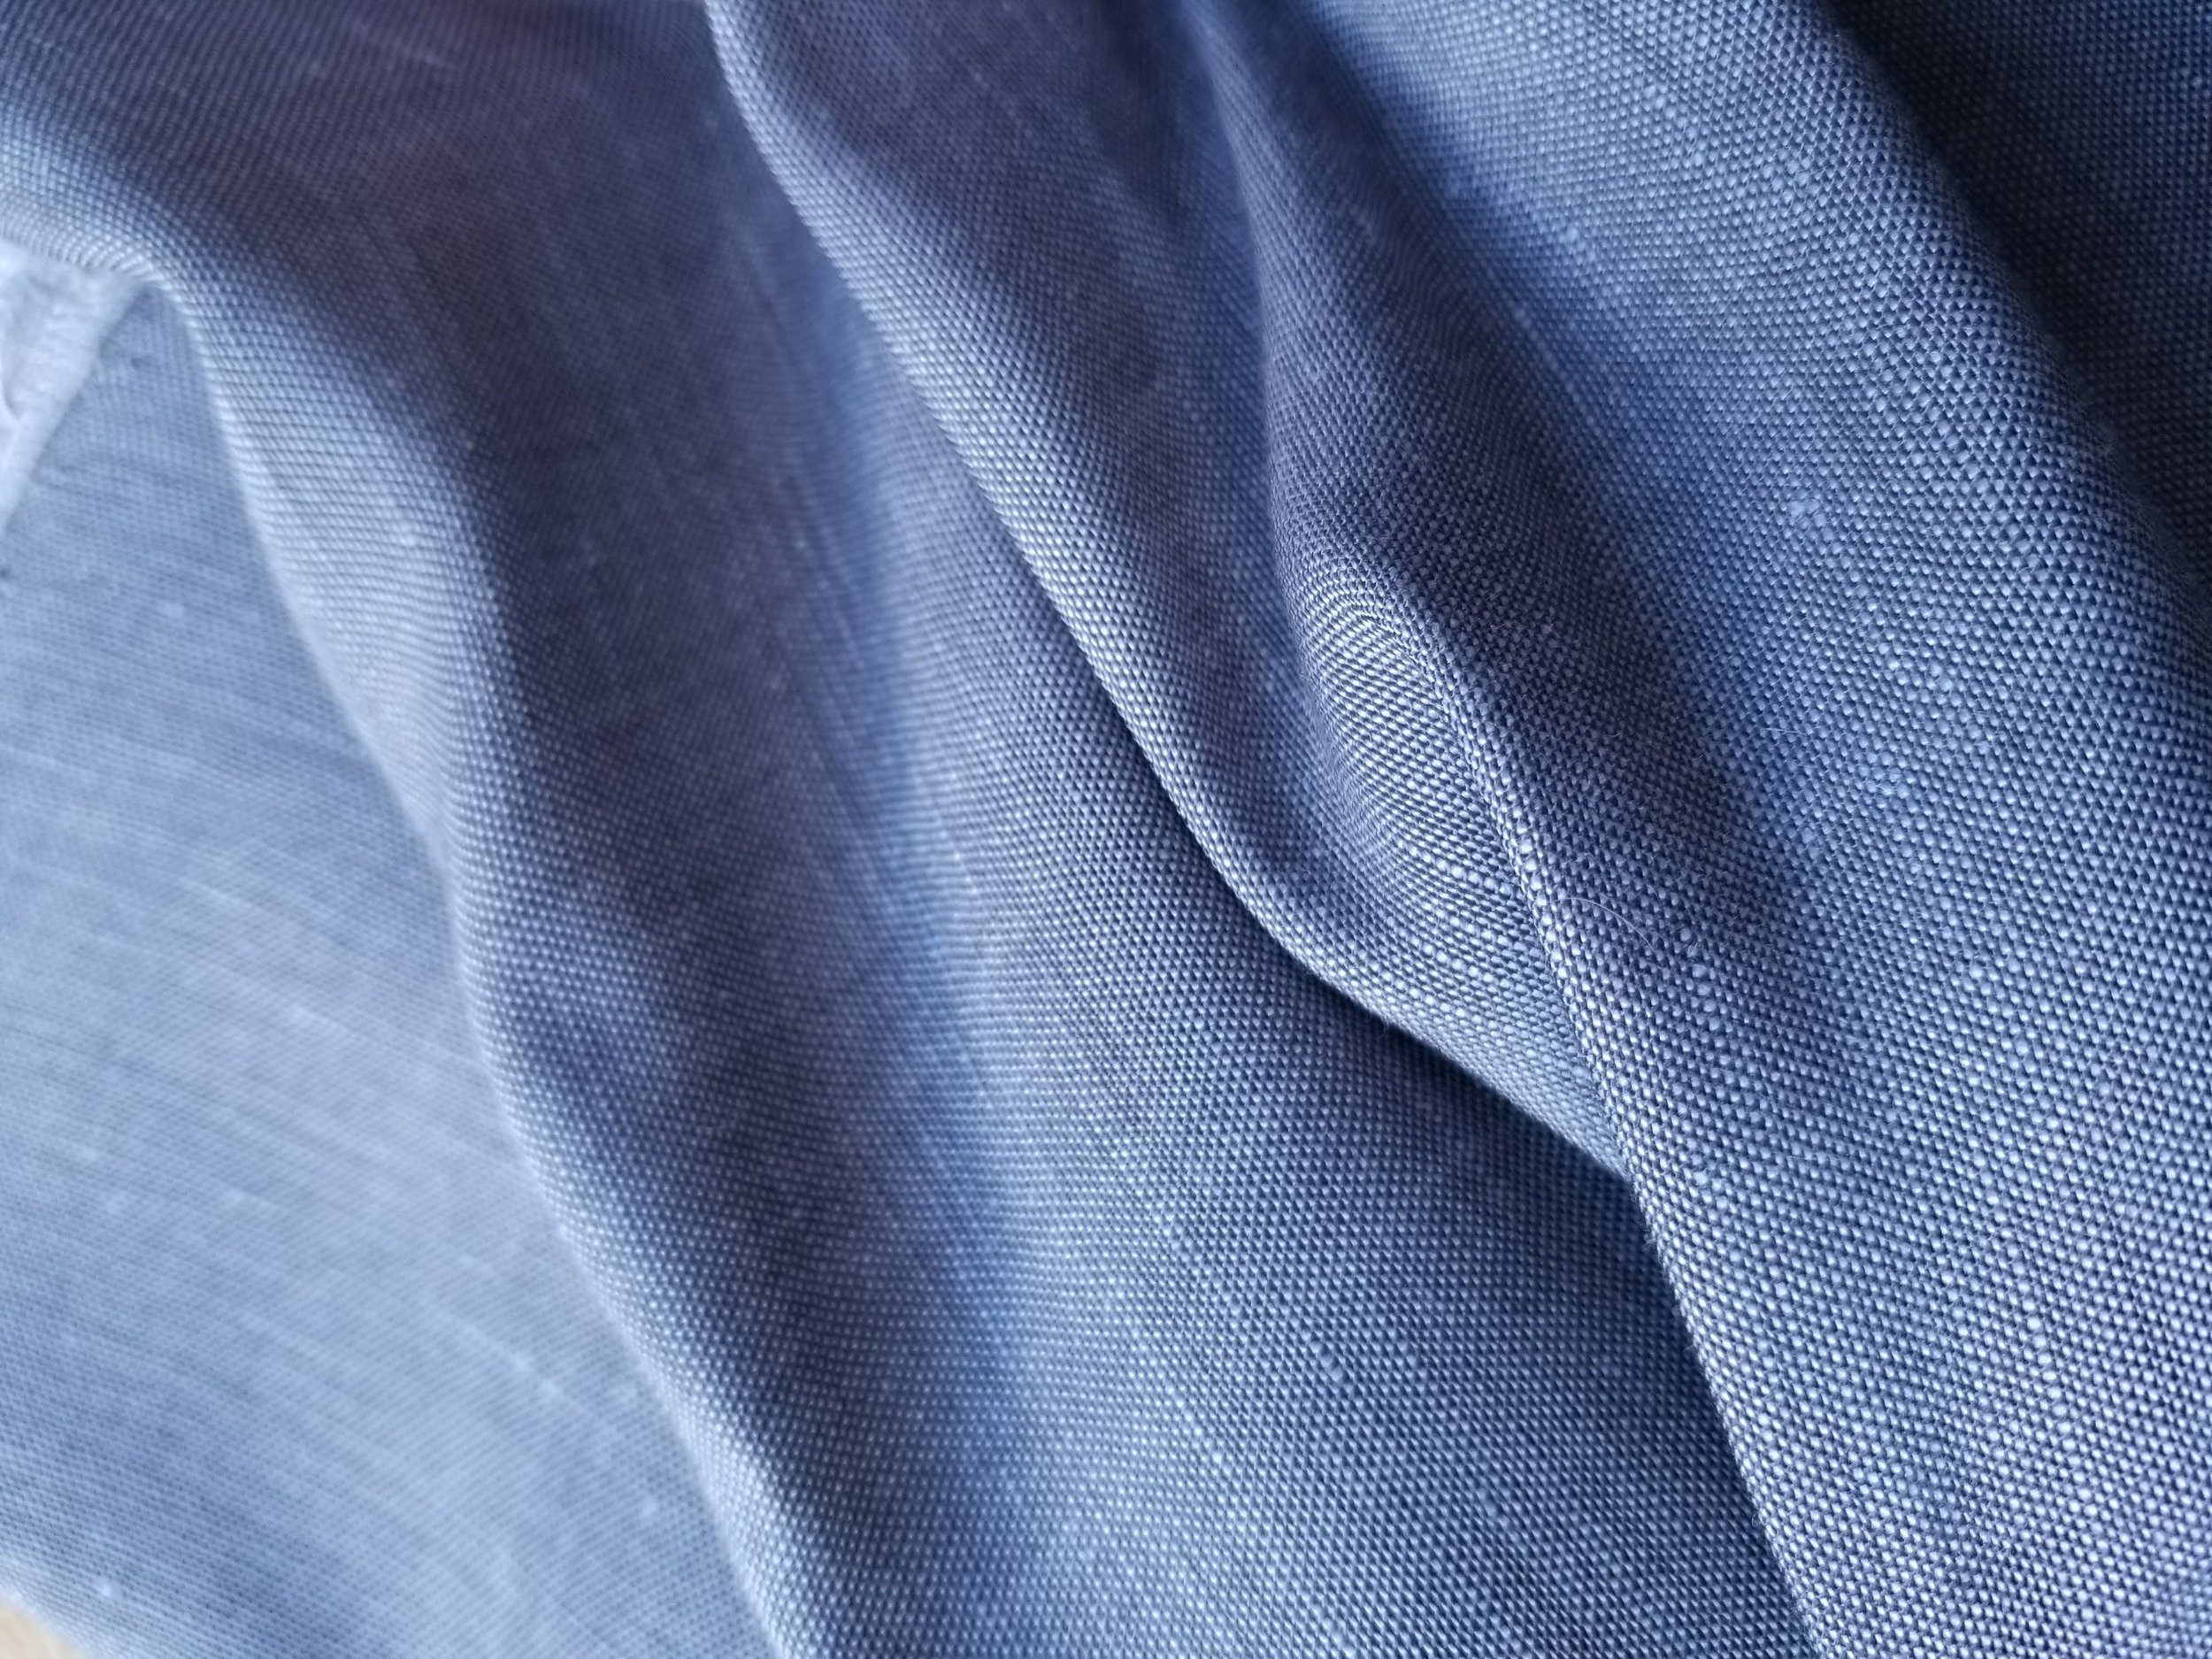 the best quality fabrics in limited runs - EXCLUSIVE